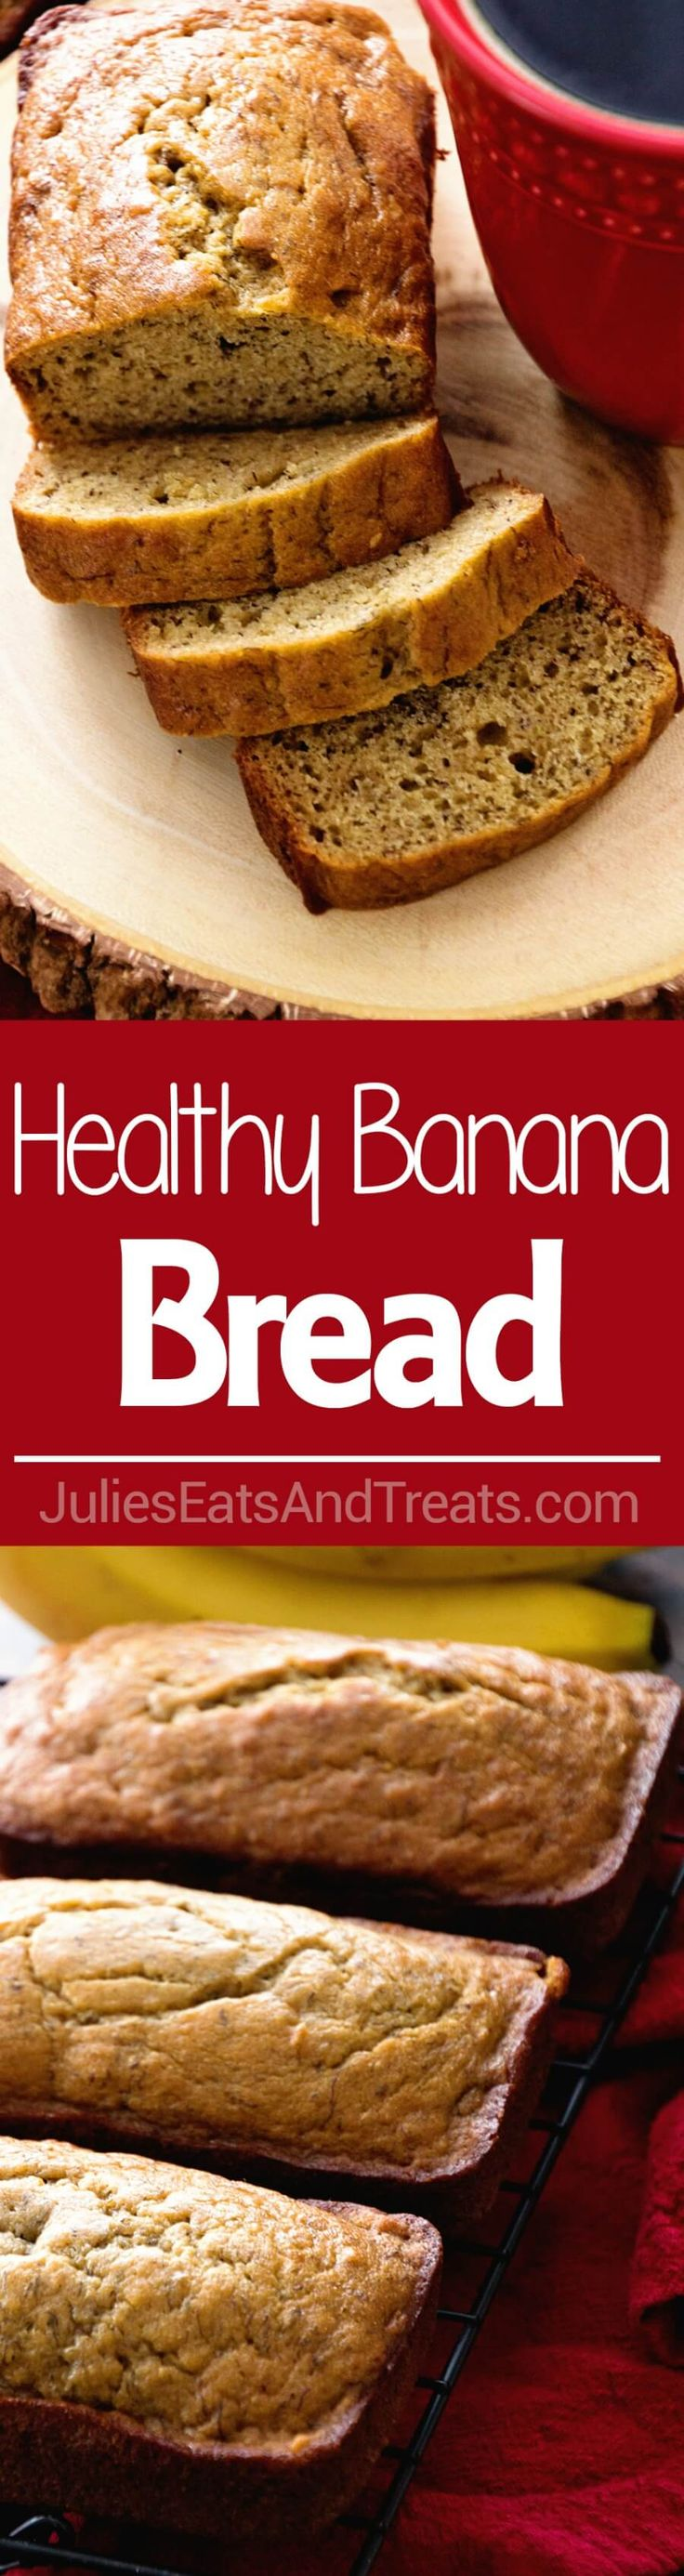 Best 25 banana bread with oil ideas on pinterest banana bread best 25 banana bread with oil ideas on pinterest banana bread recipe with butter banana bread recipe made with oil and banana bread healthy yogurt forumfinder Image collections